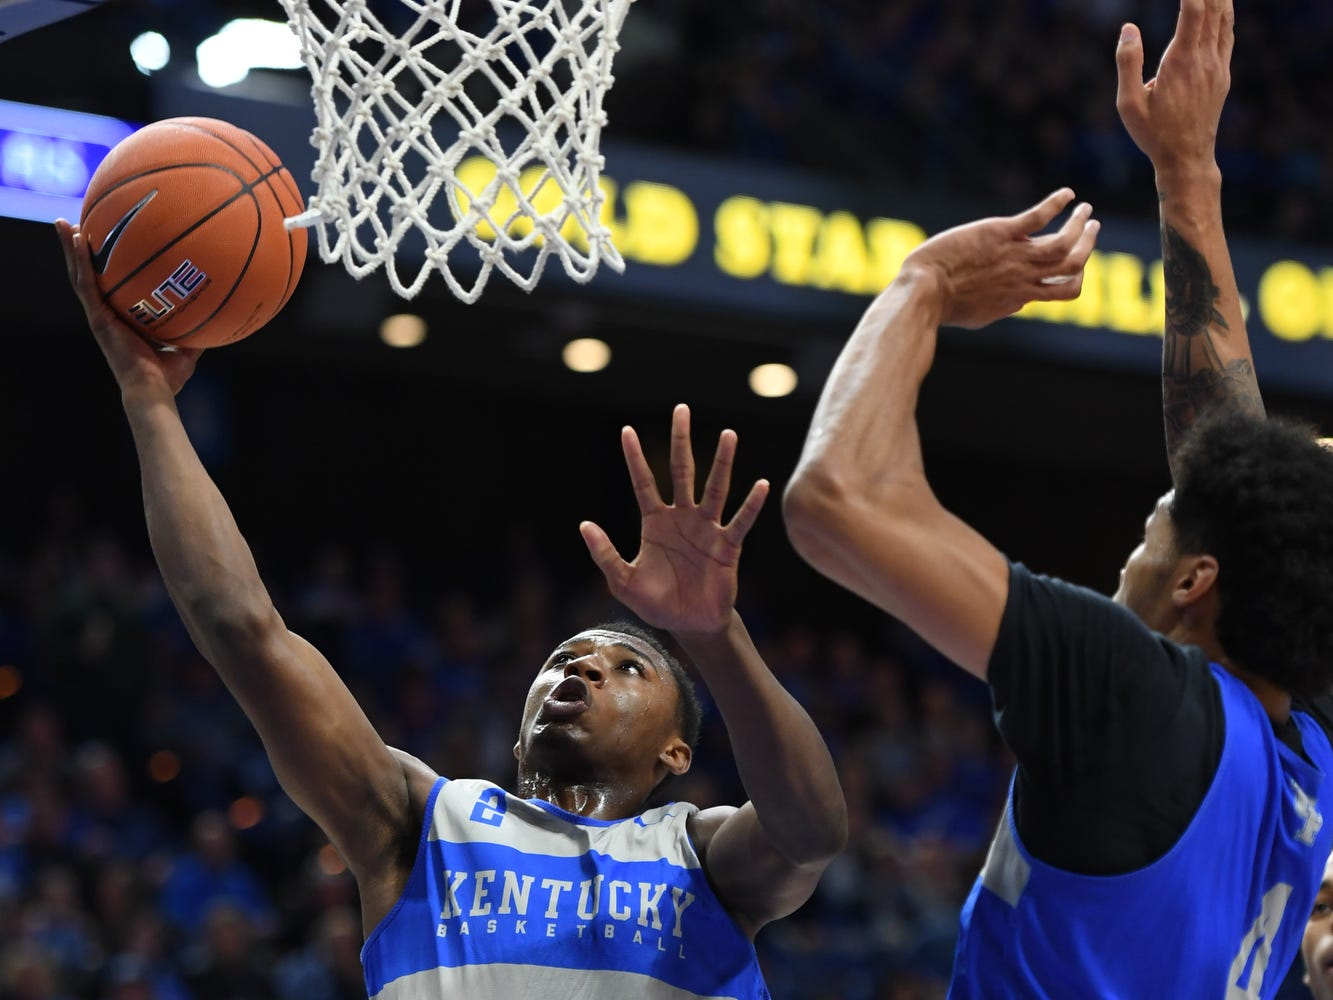 UK G Ashton Hagans puts up the ball during the University of Kentucky mens basketball Blue/White game at Rupp Arena in Lexington, Kentucky on Sunday, October 21, 2018.